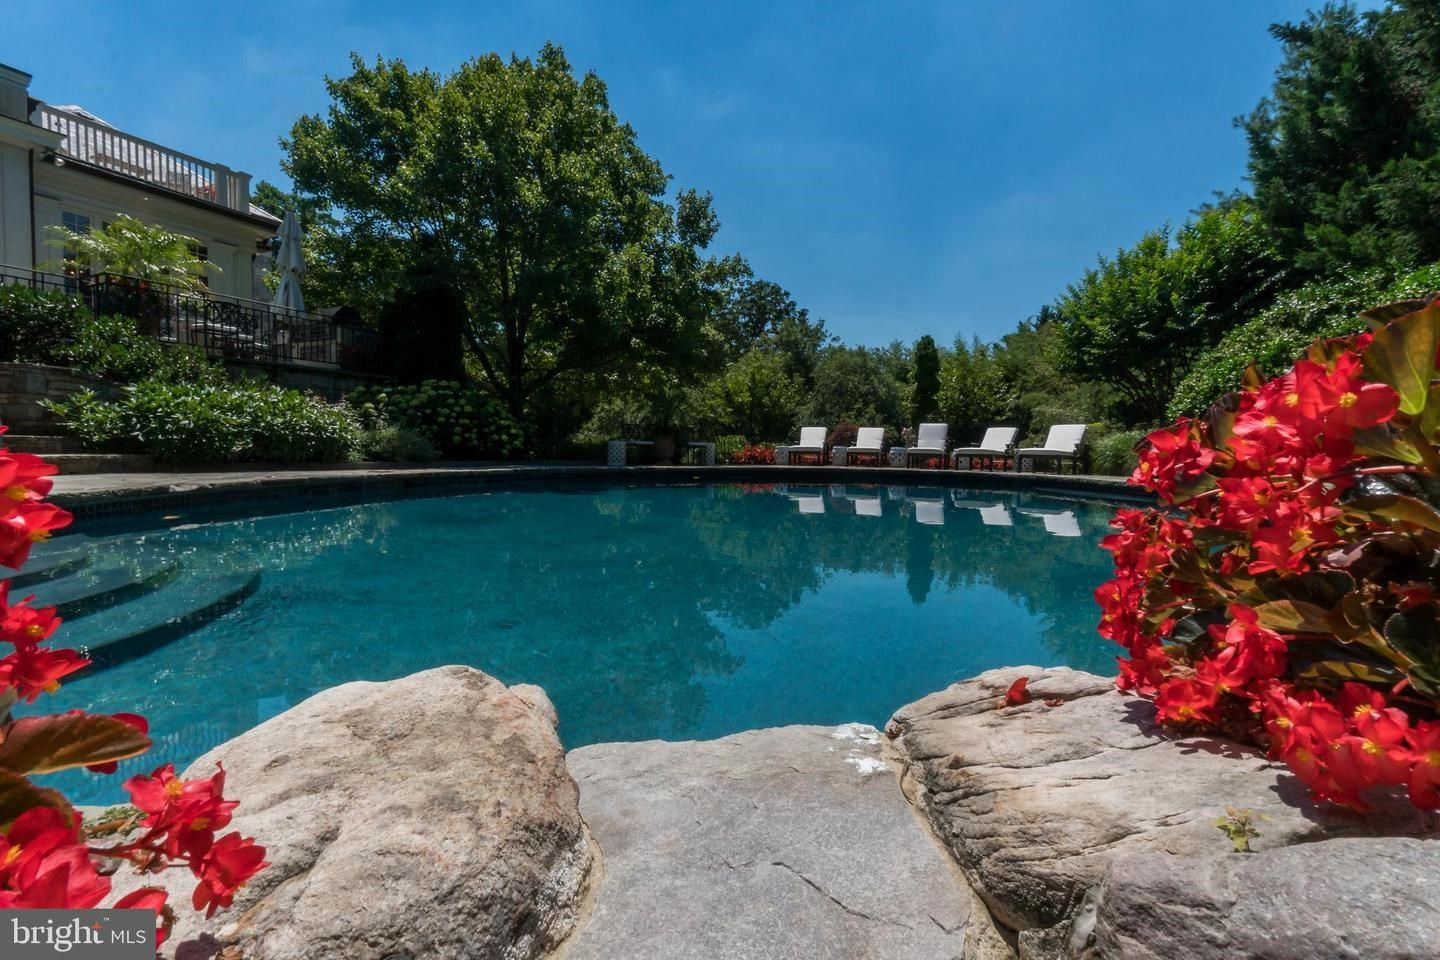 cb1f7341d141a5cfdf5a4dae9dc63d4e - Rock Creek Gardens Condos For Rent